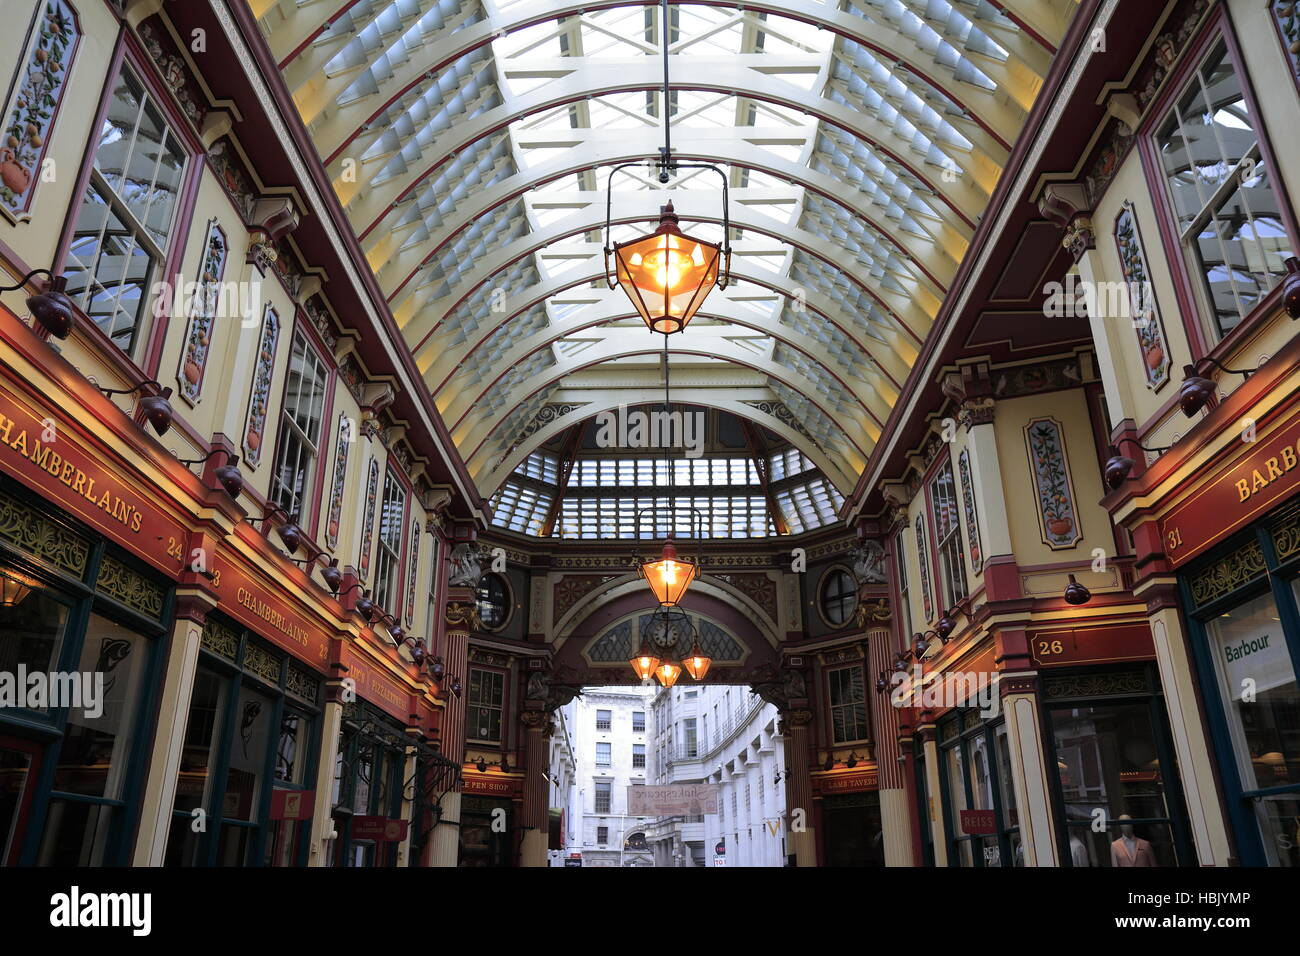 Leadenhall Market galerie marchande couverte Photo Stock